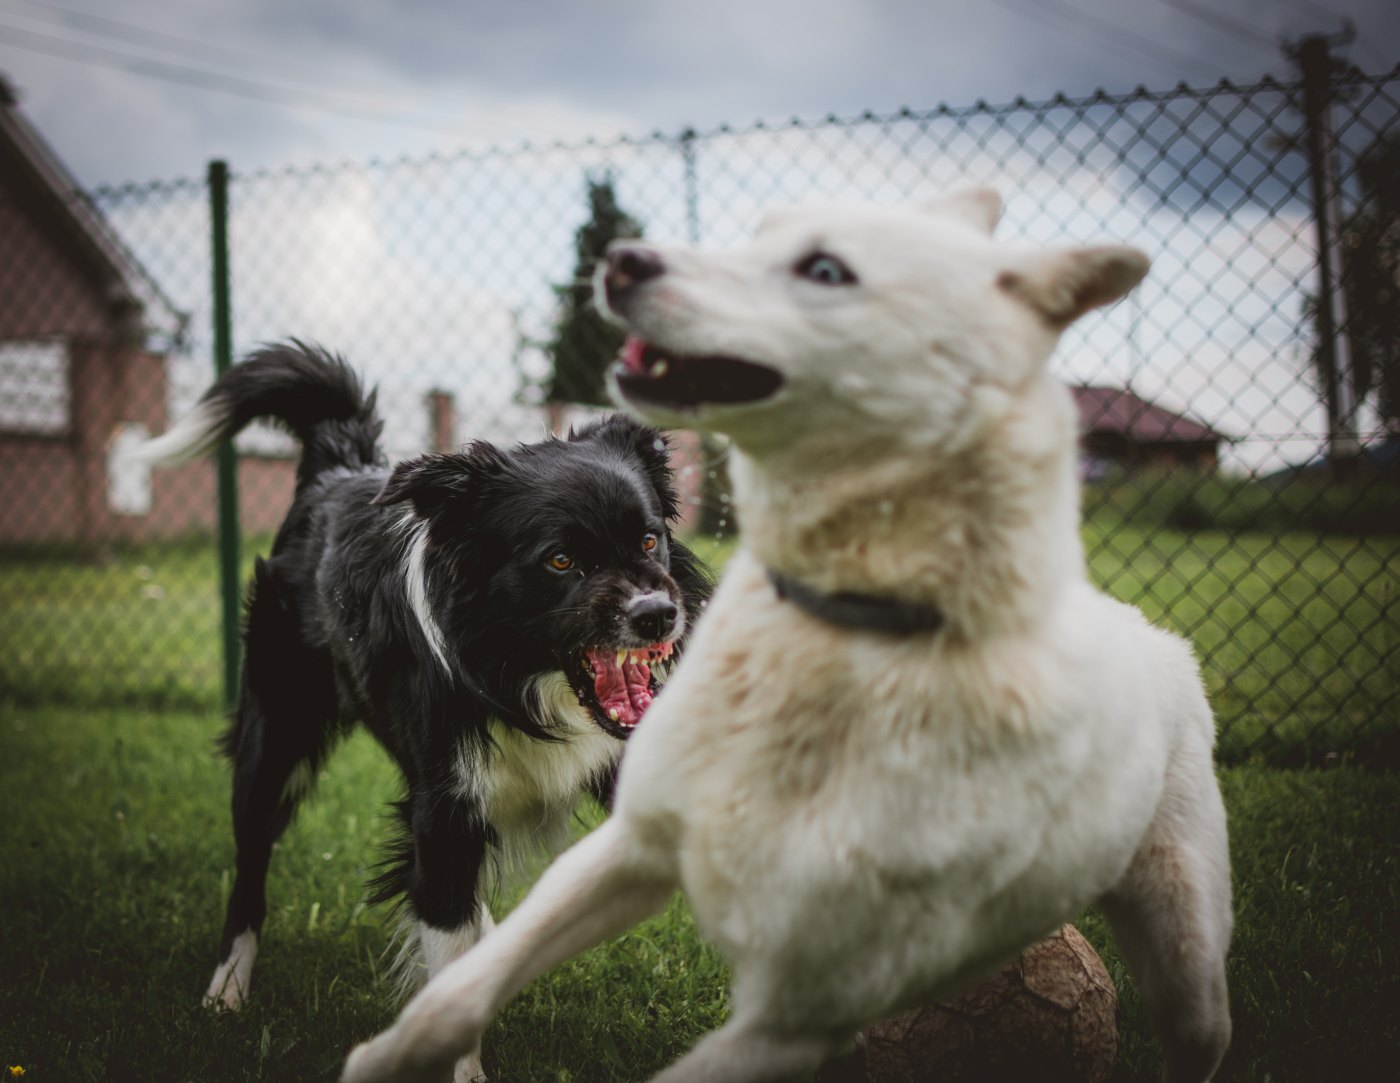 one angry dog fighting with another dog who is surprised by the aggression moving away in fear which represents hostility in a conflict resolution situation